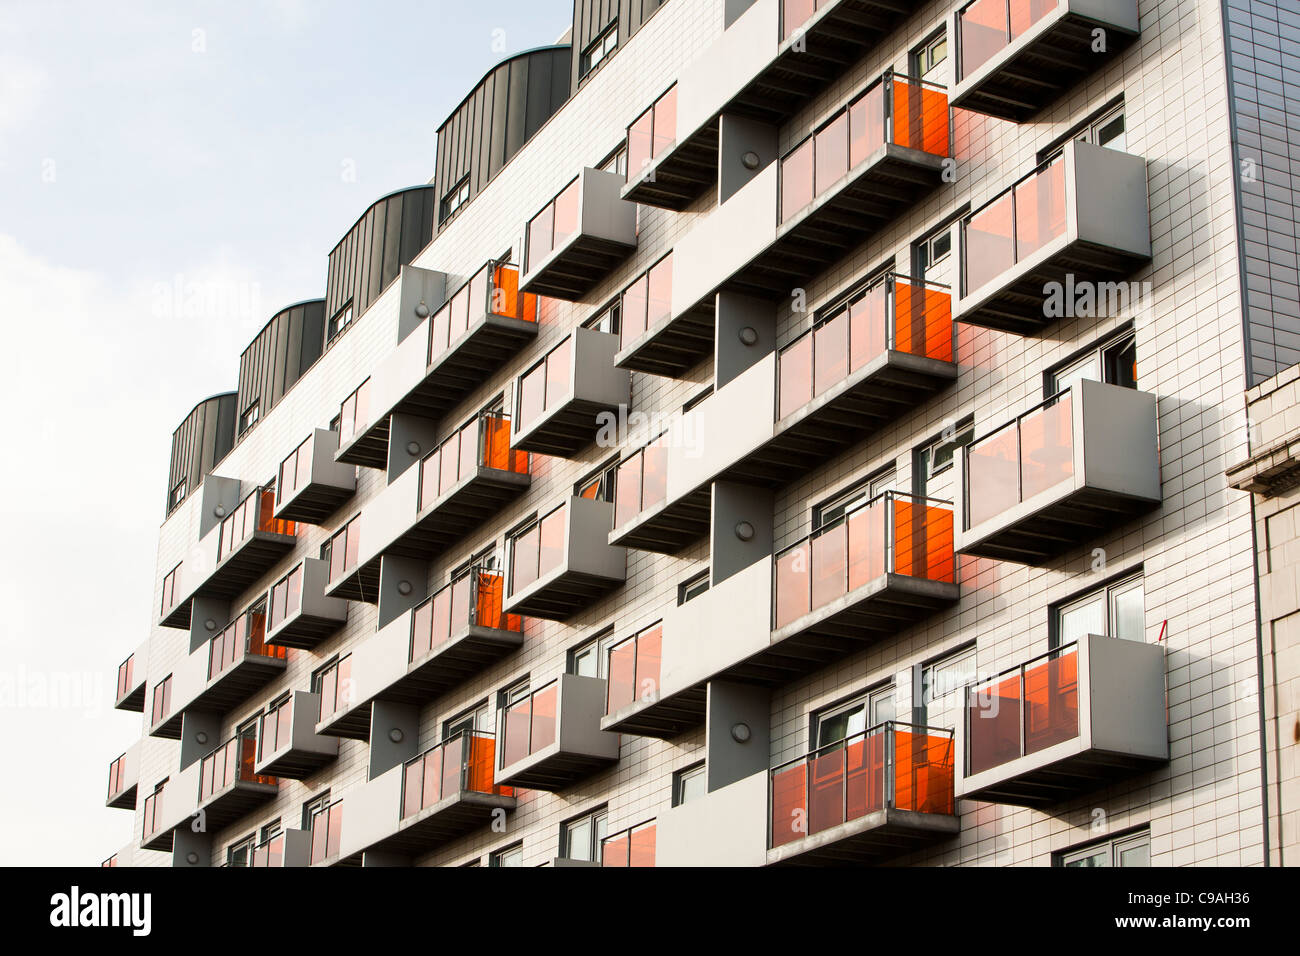 A modern apartment block in Manchester city centre, UK. - Stock Image